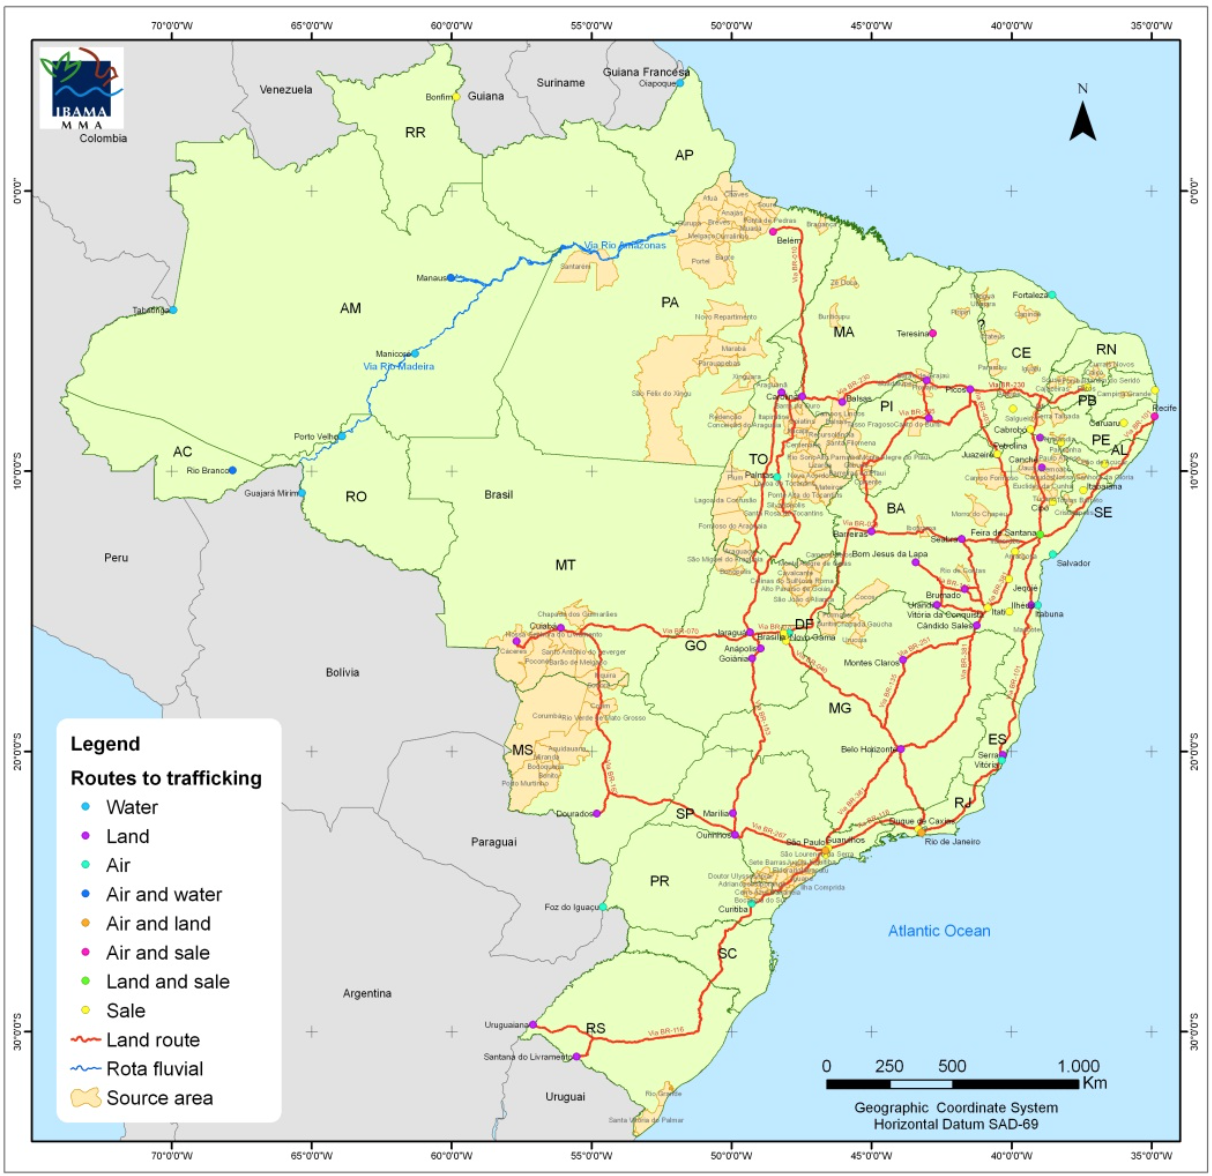 """Main routes for the wild animals trafficking in Brazil. From: Biodiversity Enrichment in a Diverse World"""" (published under creative commons (http://www.intechopen.com/books/biodiversity-enrichment-in-a-diverse-world/efforts-to-combat-wild-animals-trafficking-in-brazil; map in this chapter. P. 433: http://cdn.intechopen.com/pdfs-wm/38670.pdf)"""